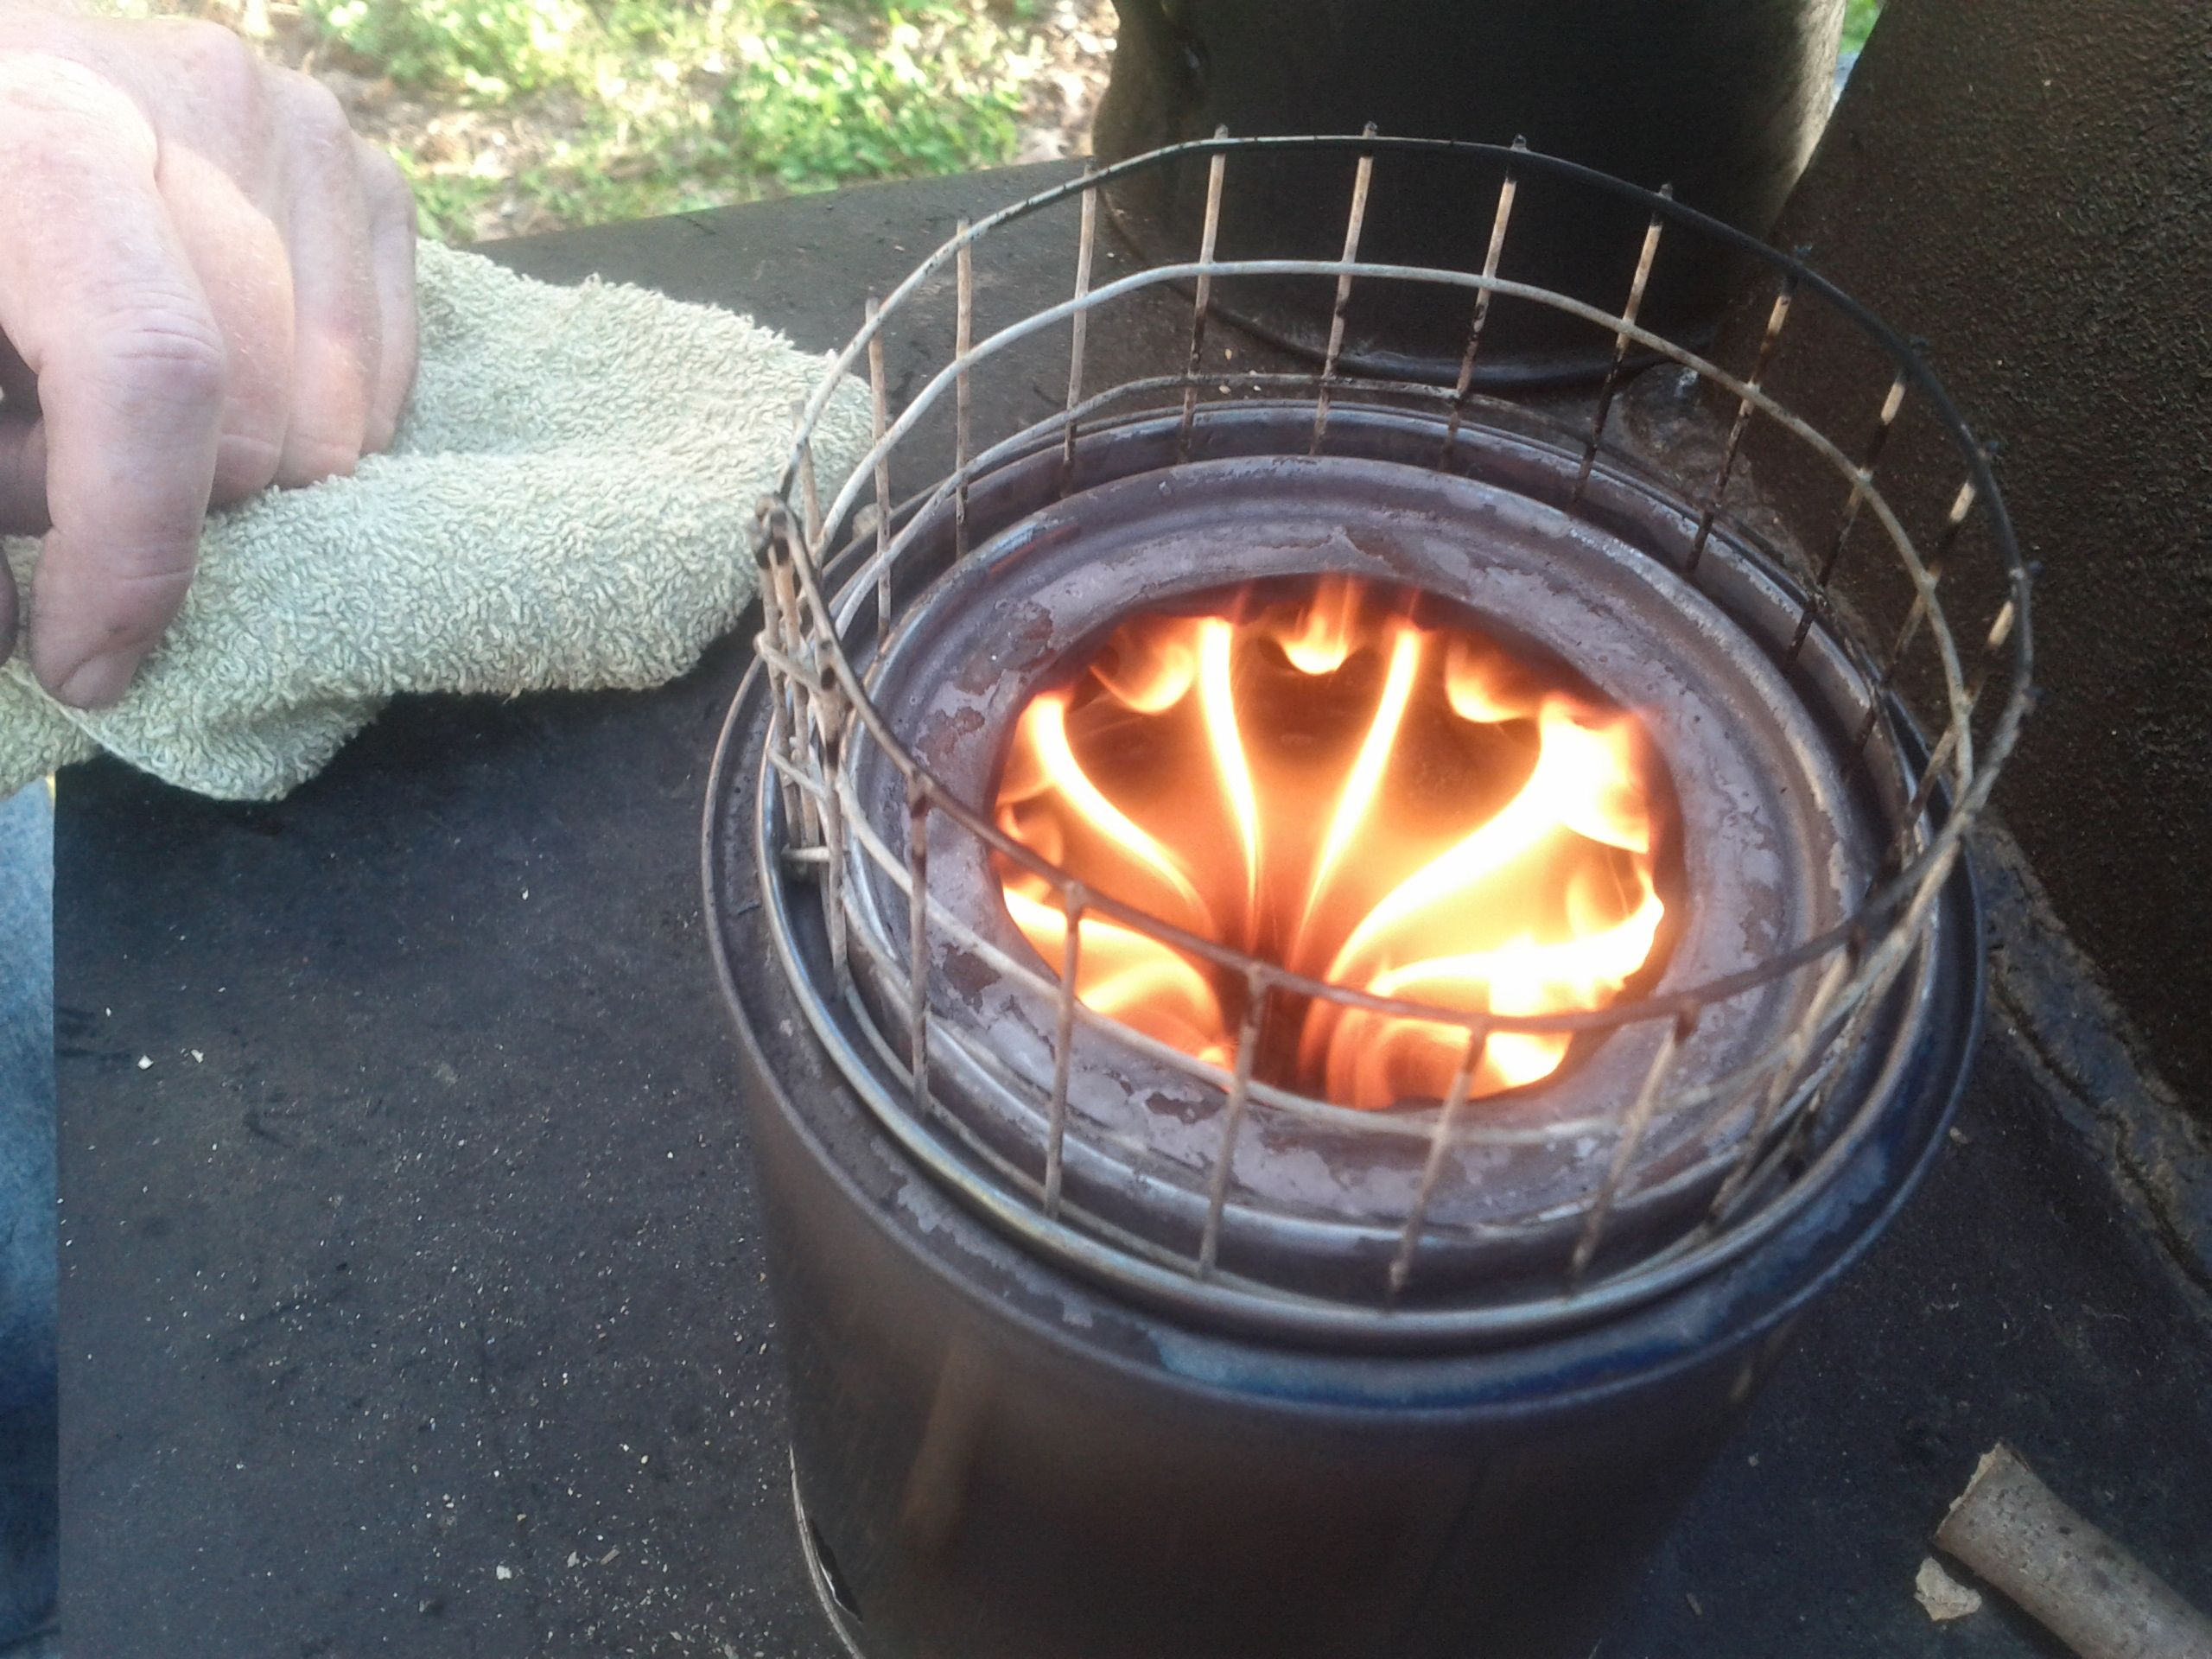 soda can alcohol stove instructions